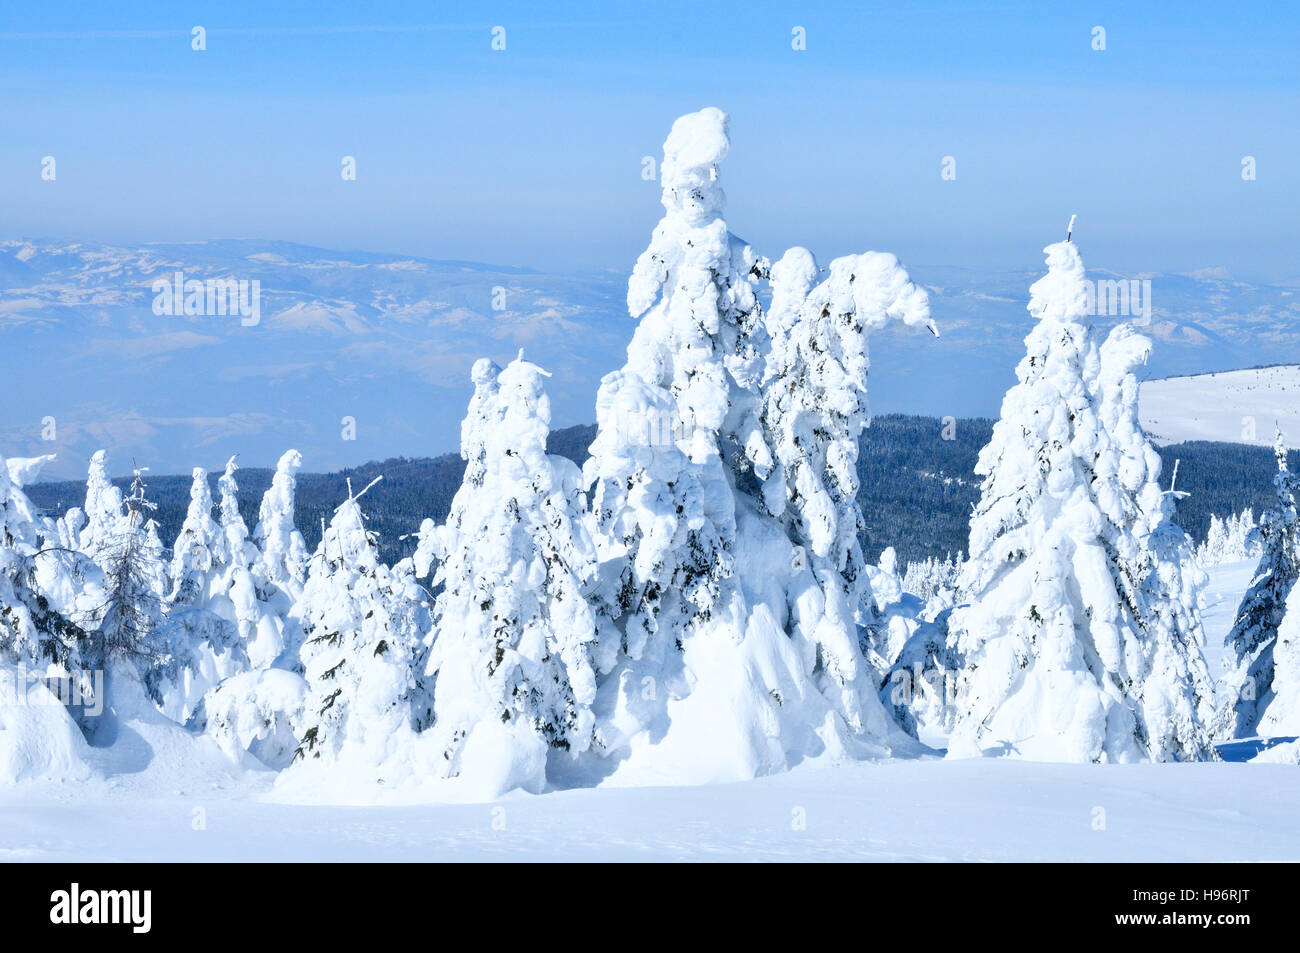 Snow covered spruce at top of mountain. Kopaonik. Serbia. - Stock Image